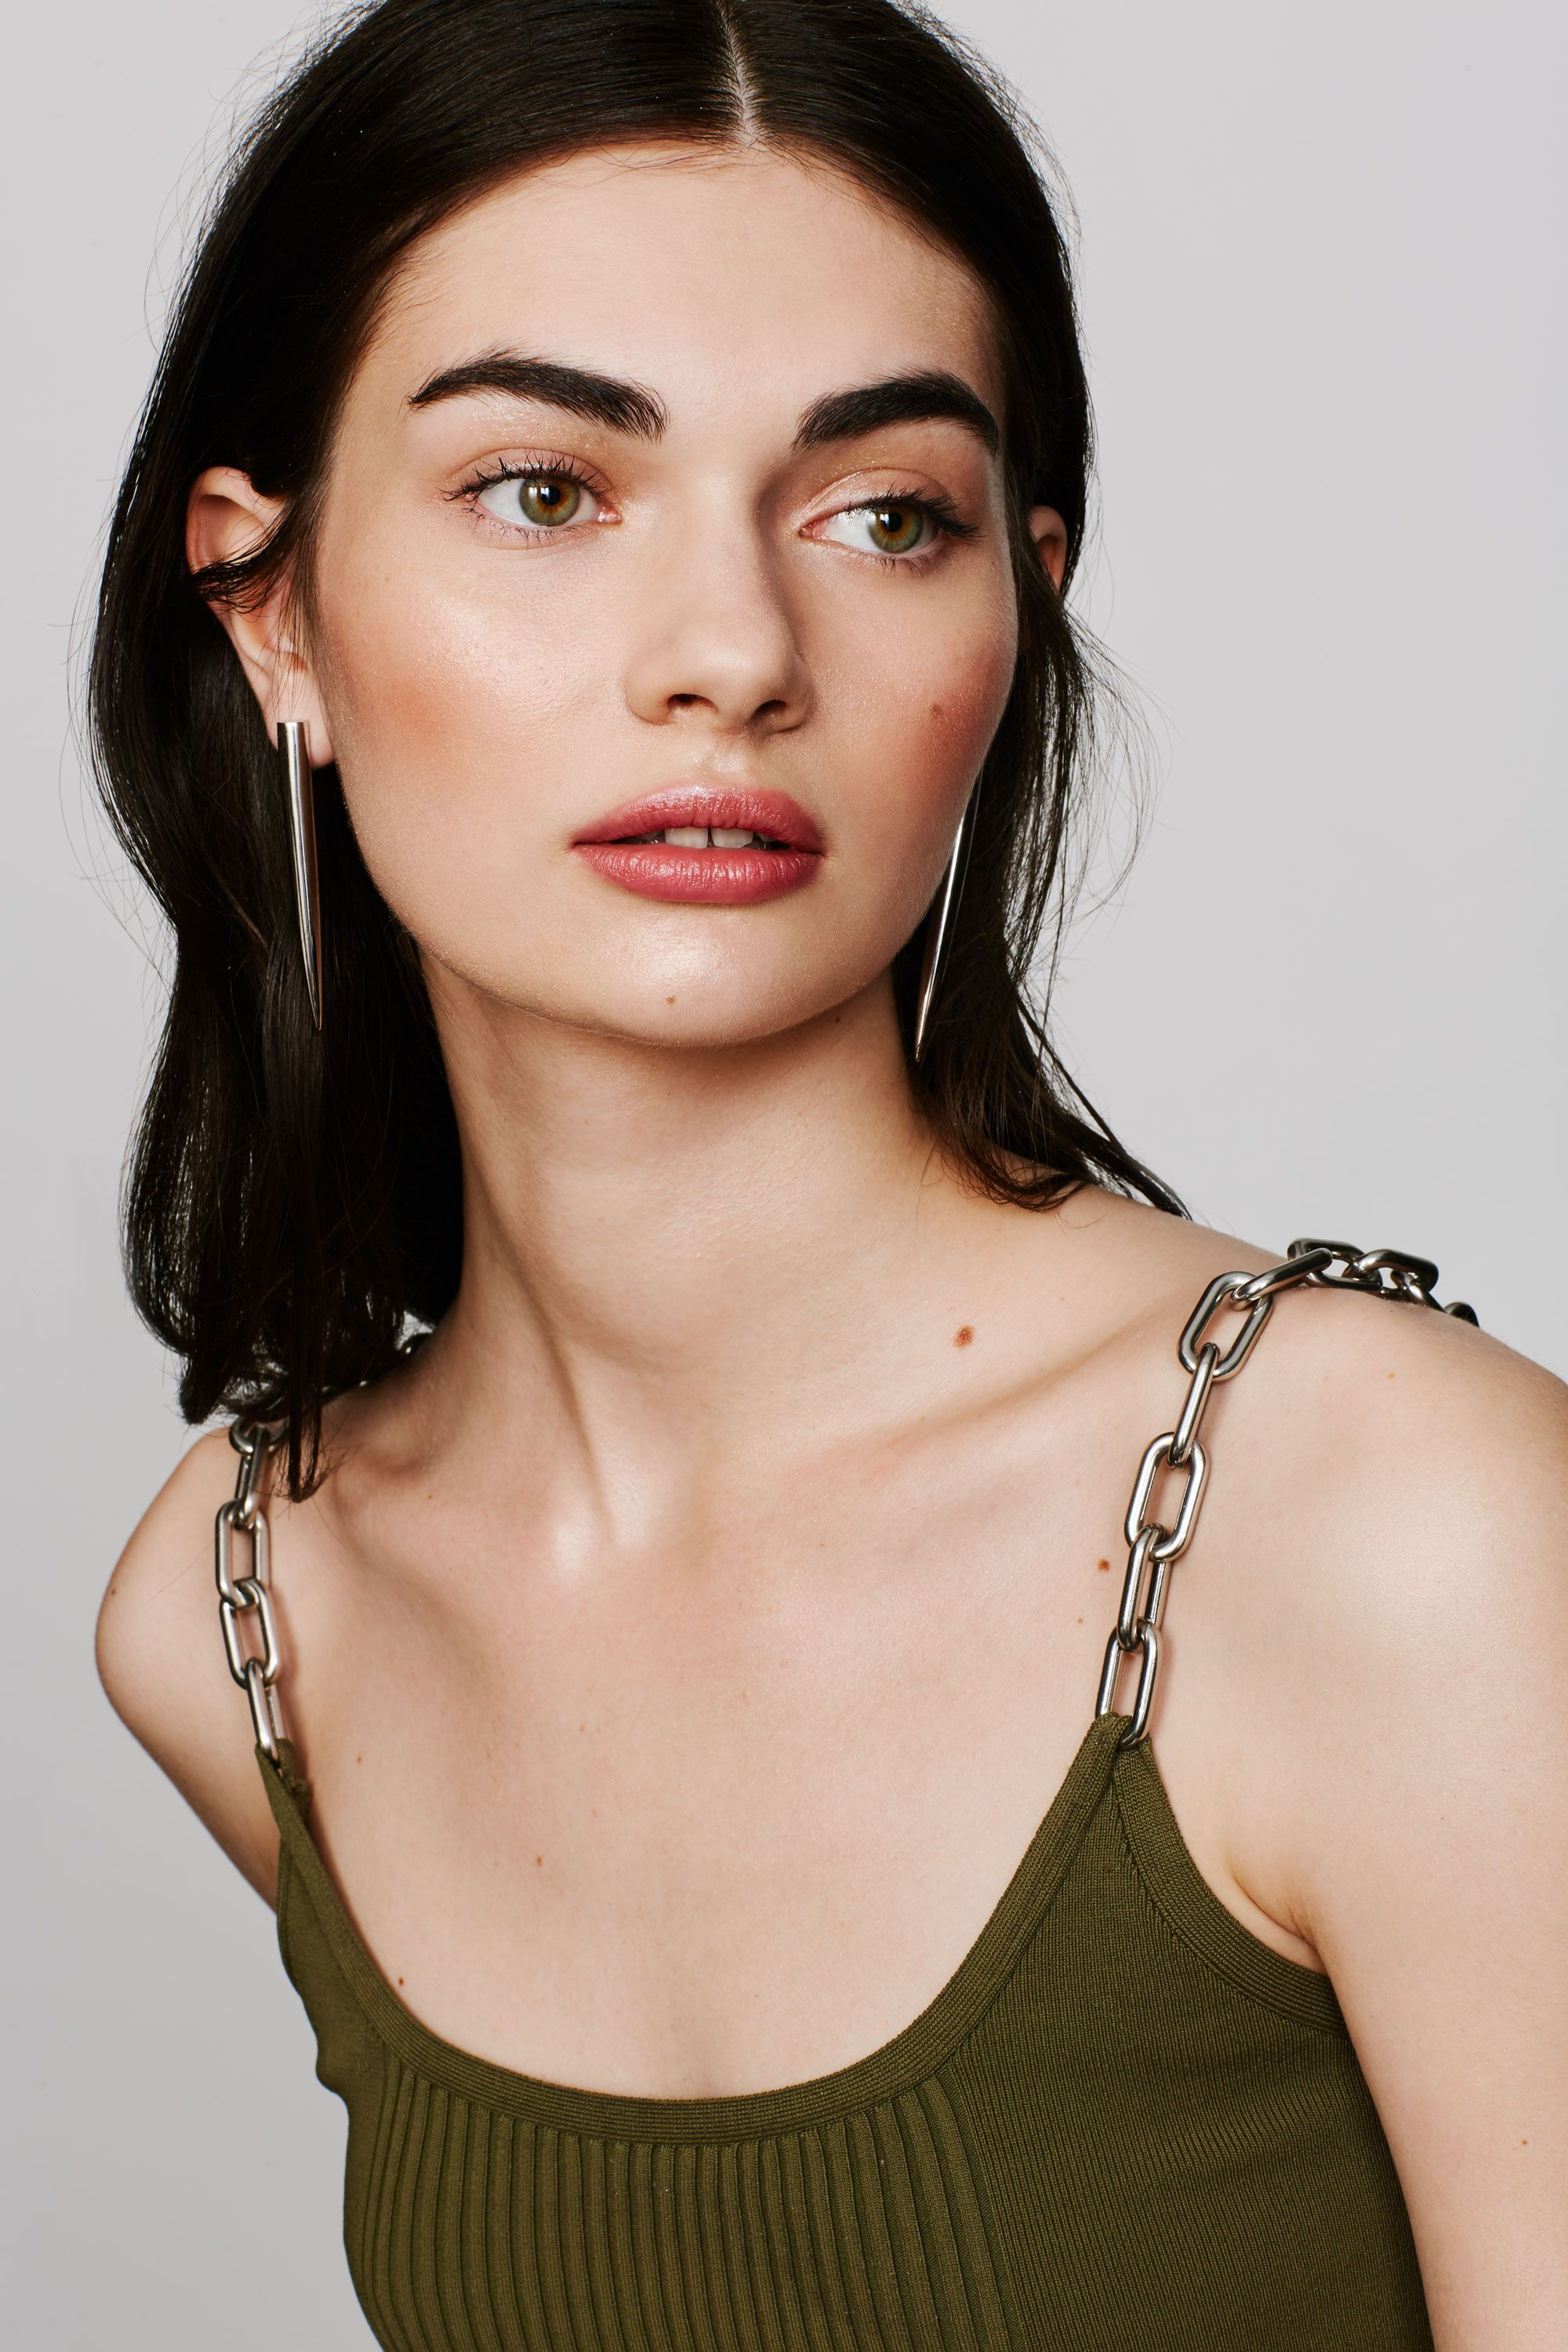 "<p>A dagger-like style gives any look a dose of hard edge cool. </p><p><br></p><p><br></p><p>Eddie Borgo Spike Drop Earrings, $175, <a href=""http://shop.nordstrom.com/s/eddie-borgo-spike-drop-earrings/4243985?&cm_mmc=Mindshare_Nordstrom-_-MayCorp-_-Hearst-_-proactive"" target=""_blank"">nordstrom.com</a>&#x3B; Alexander Wang Runway Bike Chain Bra Top, $375, <a href=""http://www.alexanderwang.com/us/shop/women/tops-top-runway-bike-chain-bra-top_cod37848638xe.html"" target=""_blank"">alexanderwang.com</a></p>"